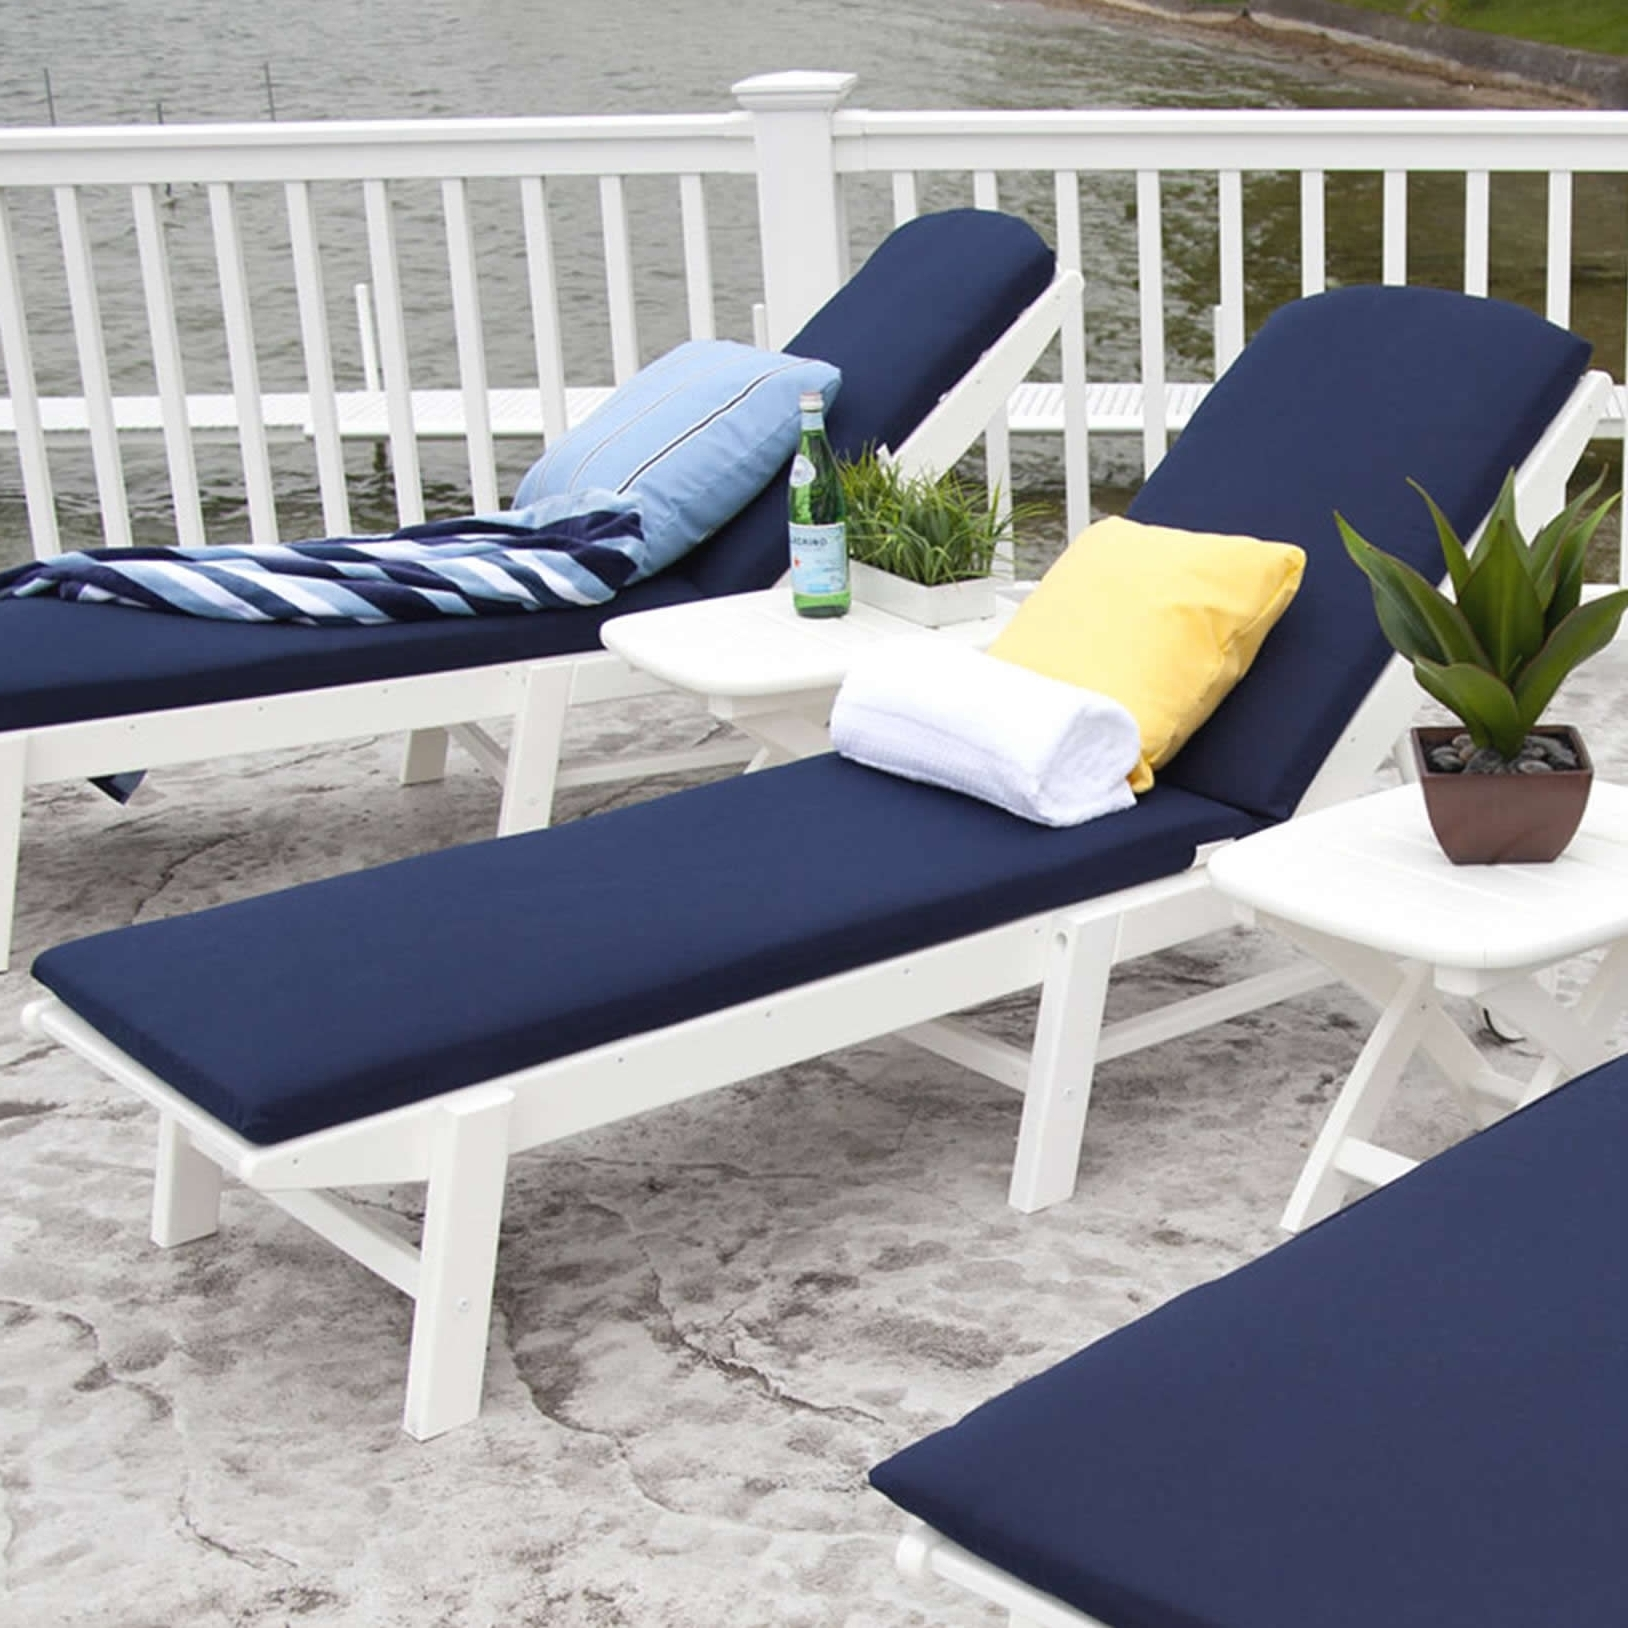 Well Known Inexpensive Outdoor Chaise Lounge Chairs Throughout Lounge Chairs : 24X24O~1 Outdoor Lounge Chair Cushions (View 11 of 15)